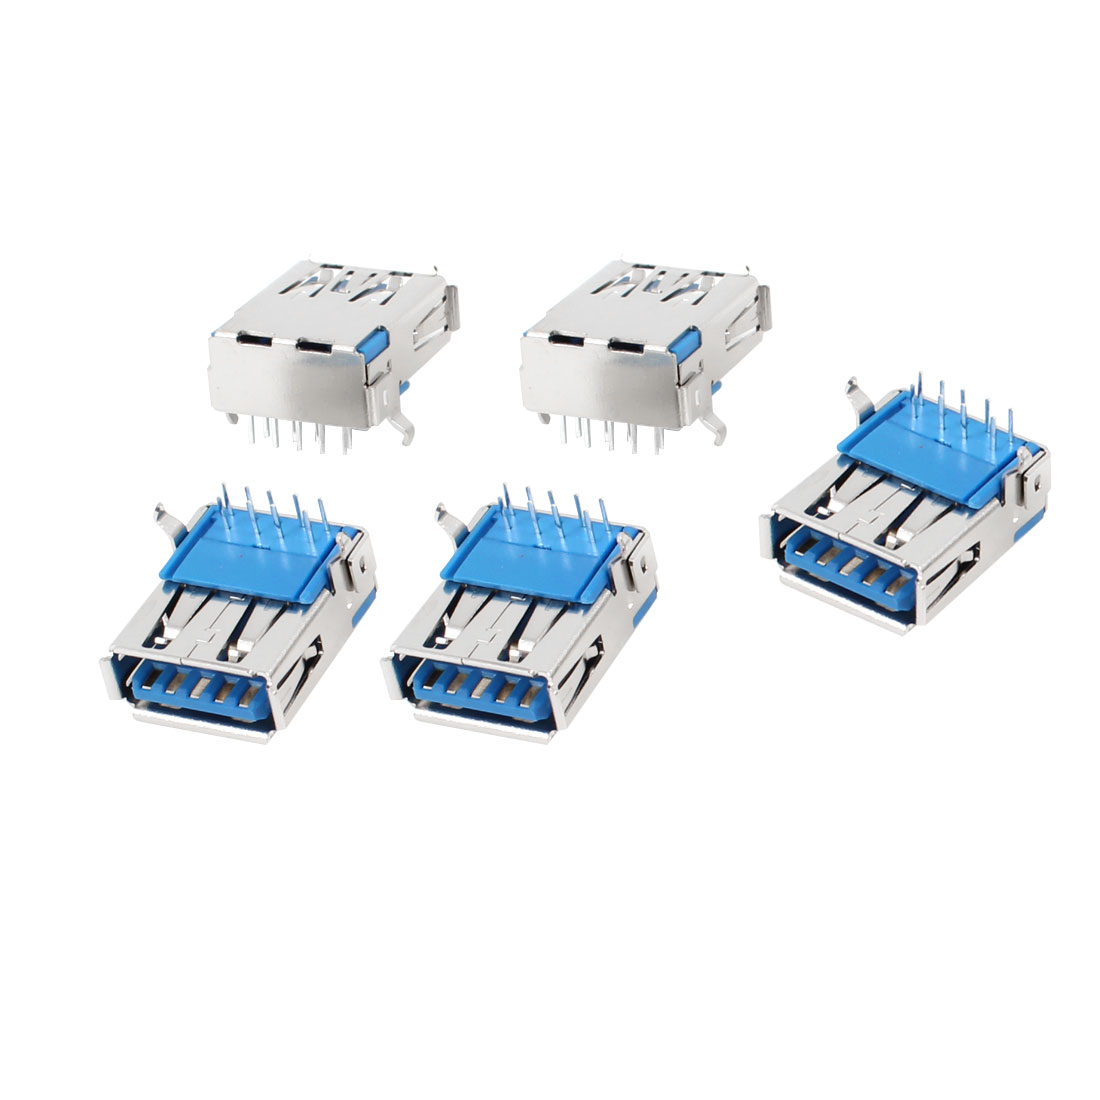 5 Pcs Single USB 3.0 Type A Female Right Angle 9-Pin DIP Jack Socket